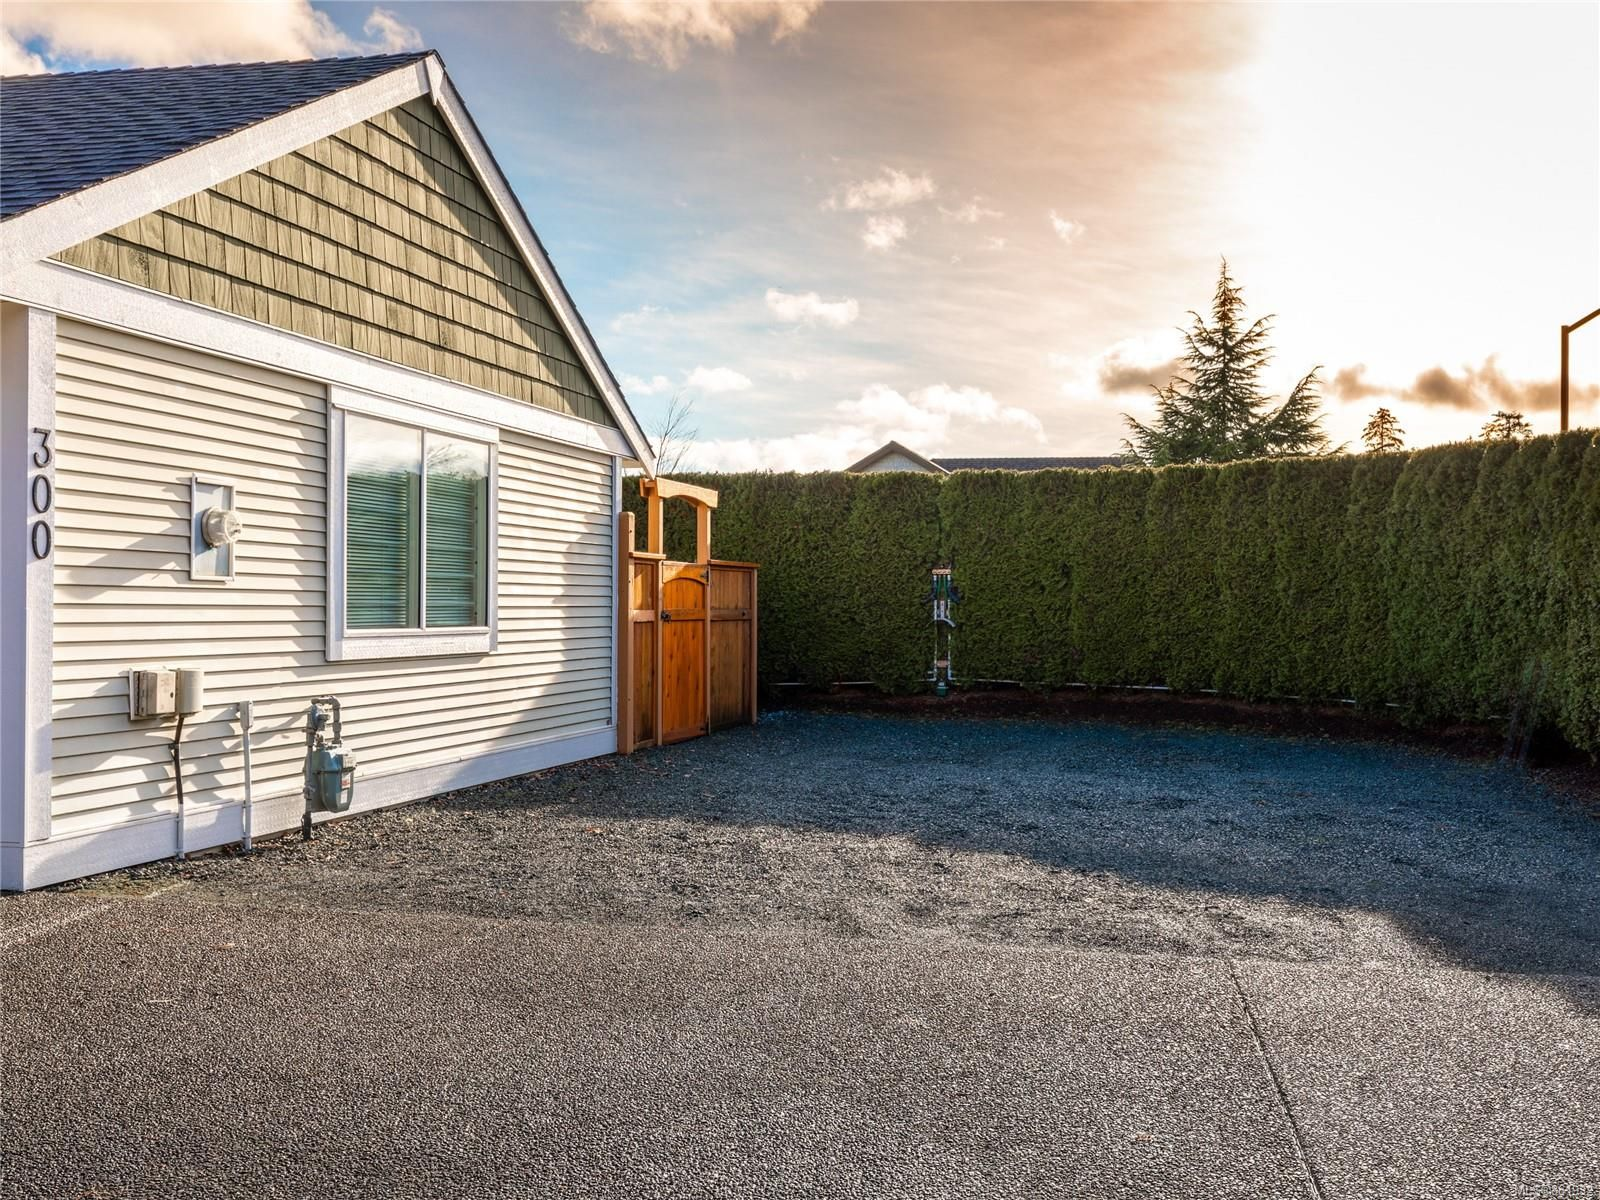 Photo 9: Photos: 300 Church Rd in : PQ Parksville House for sale (Parksville/Qualicum)  : MLS®# 861932